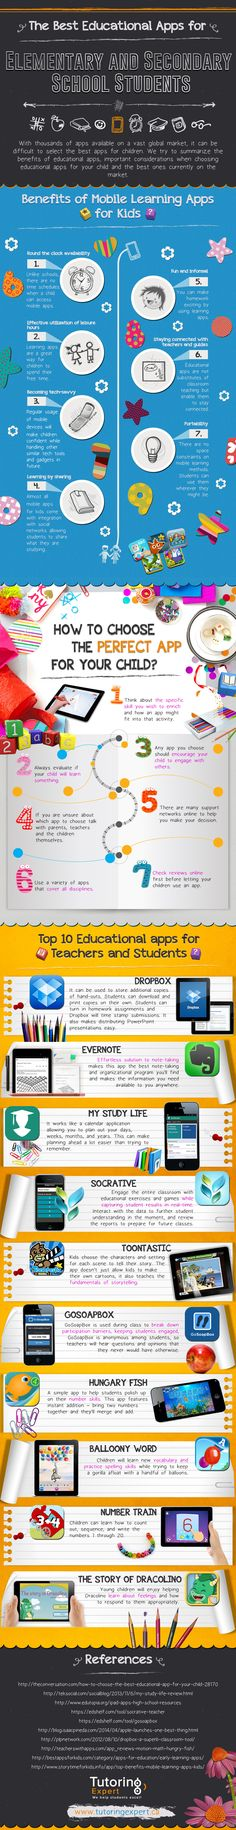 The Best Apps for Elementary & Secondary School Students Infographic - e-Learning Infographics